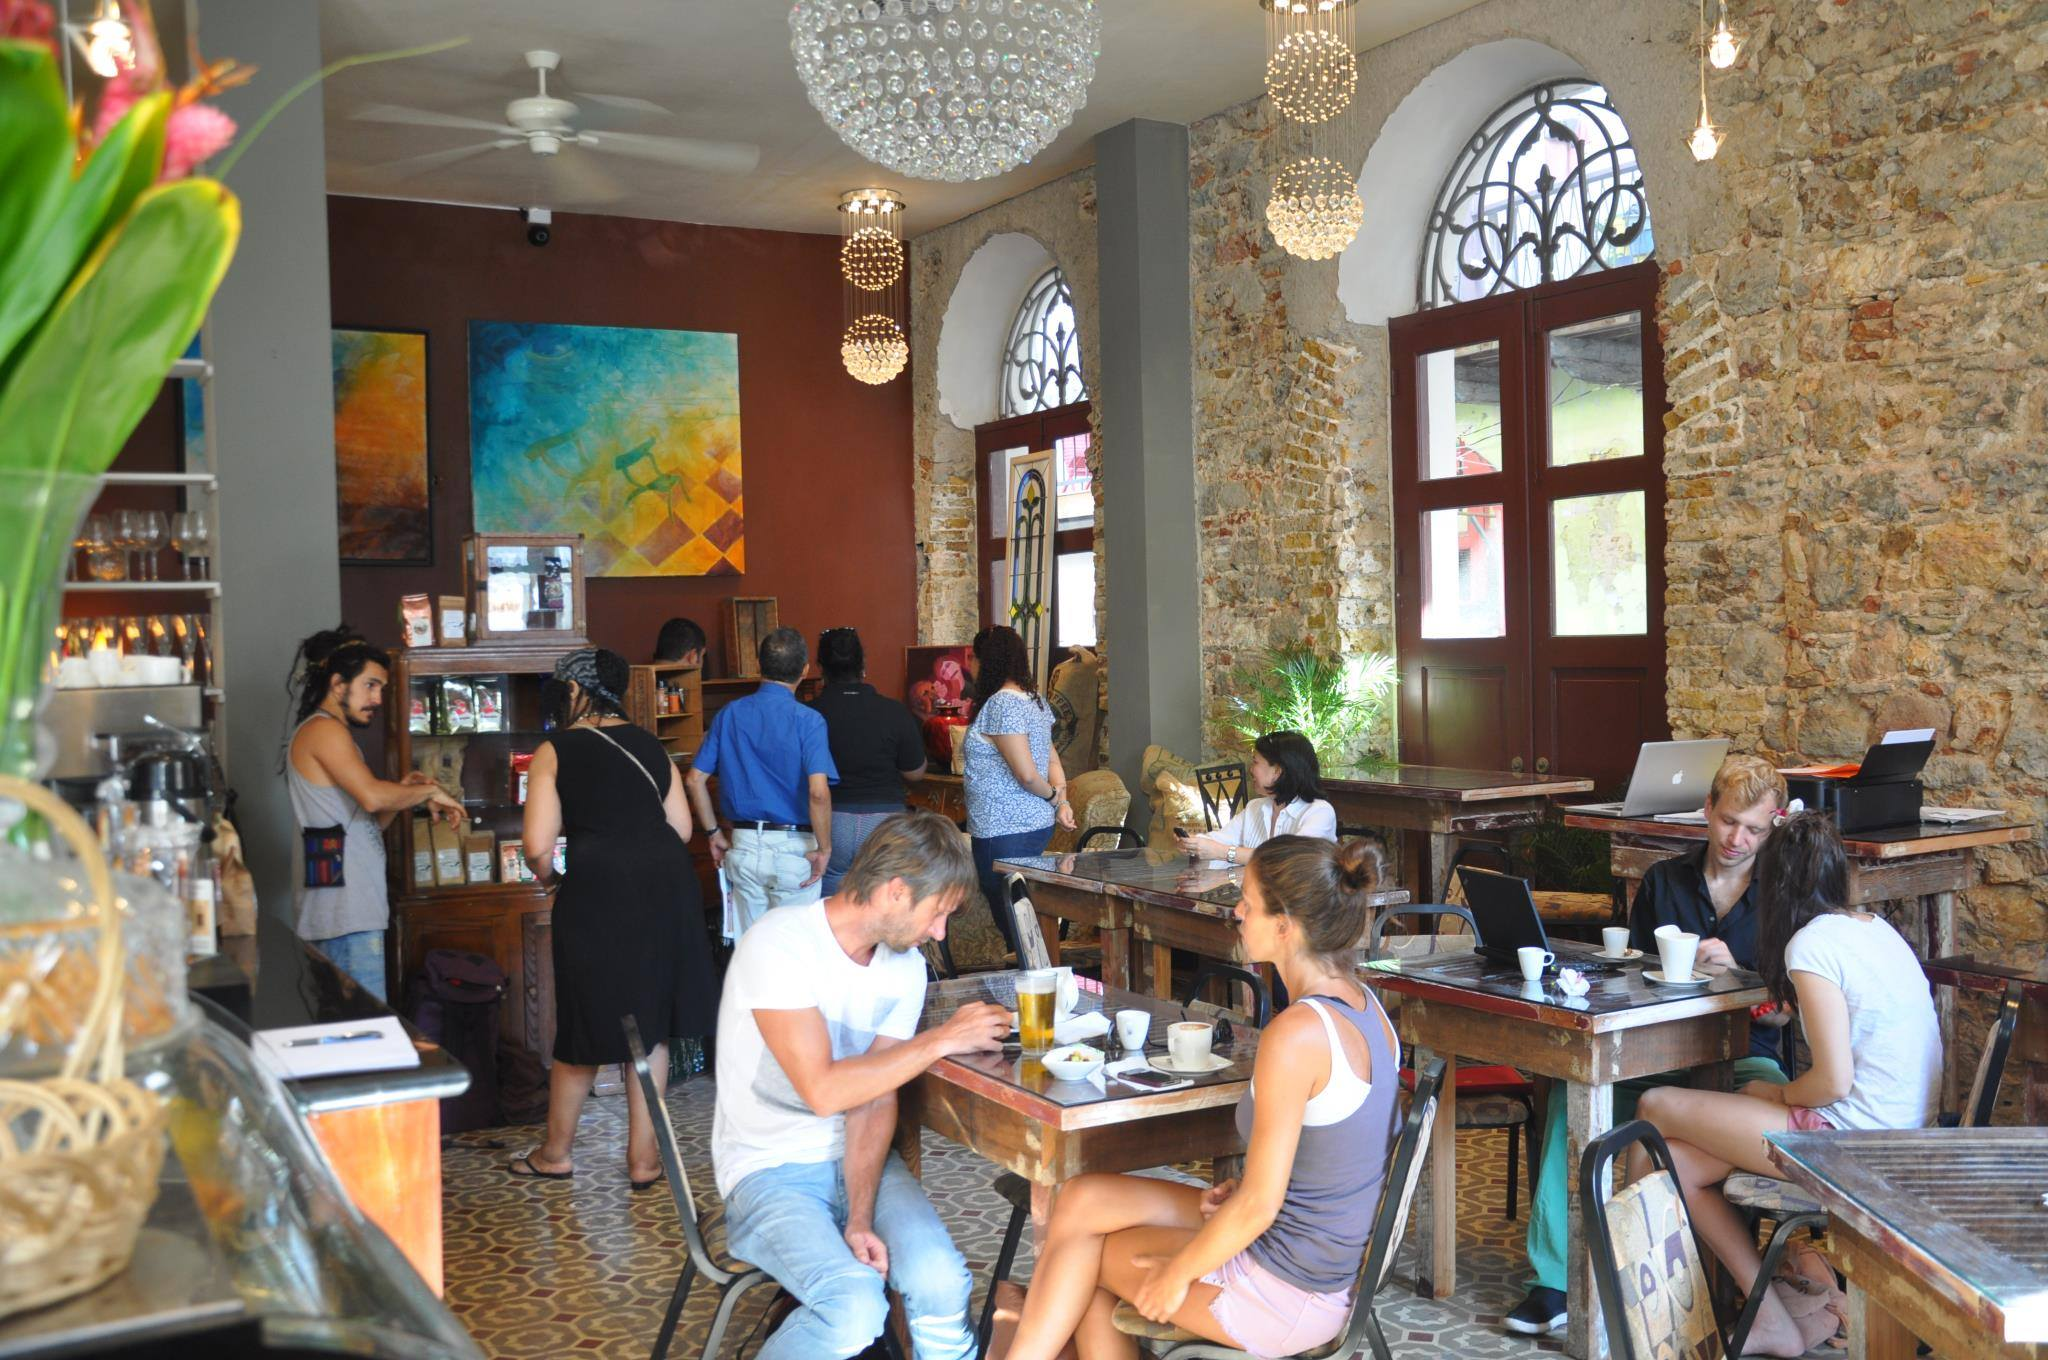 Clients of Casa Sucre Coffeehouse in Casco Viejo Panama